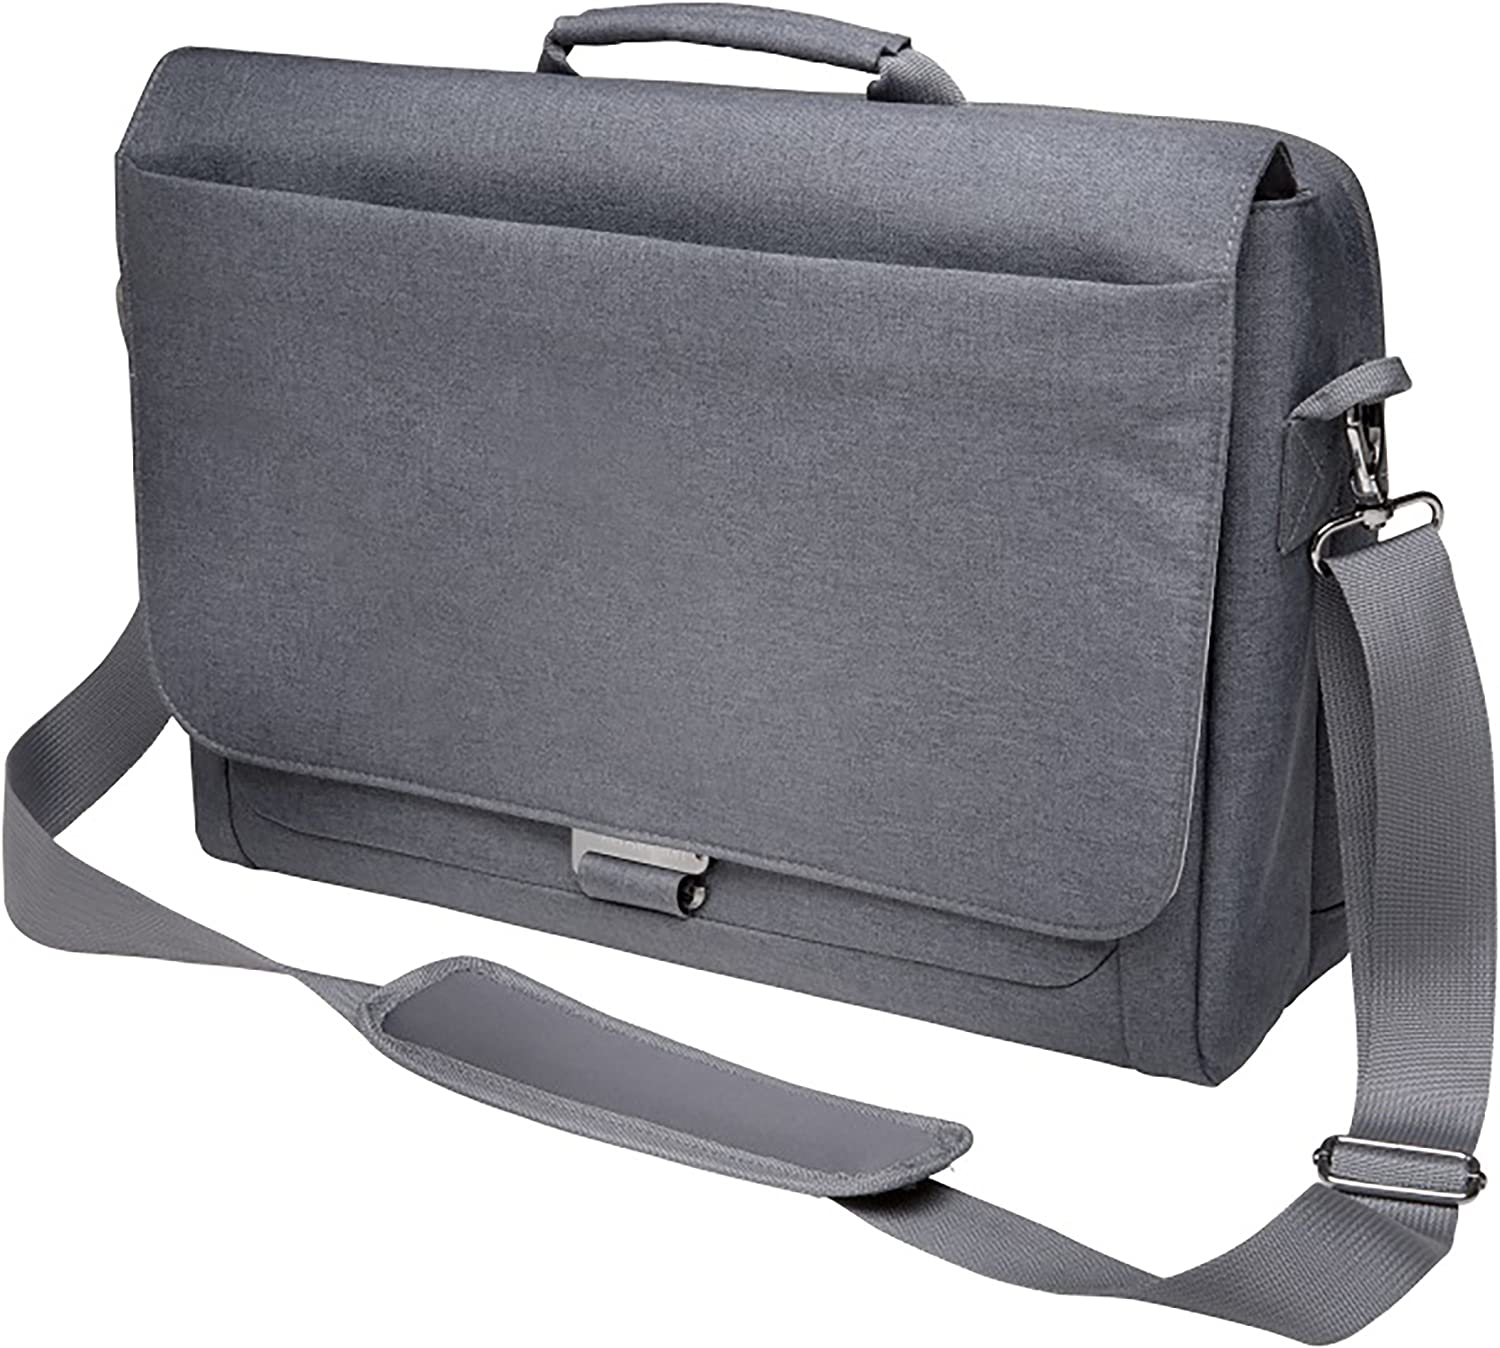 Kensington LM340 Laptop Max 83% OFF Case Messenger 14.4-Inch Limited time for free shipping K62623WW